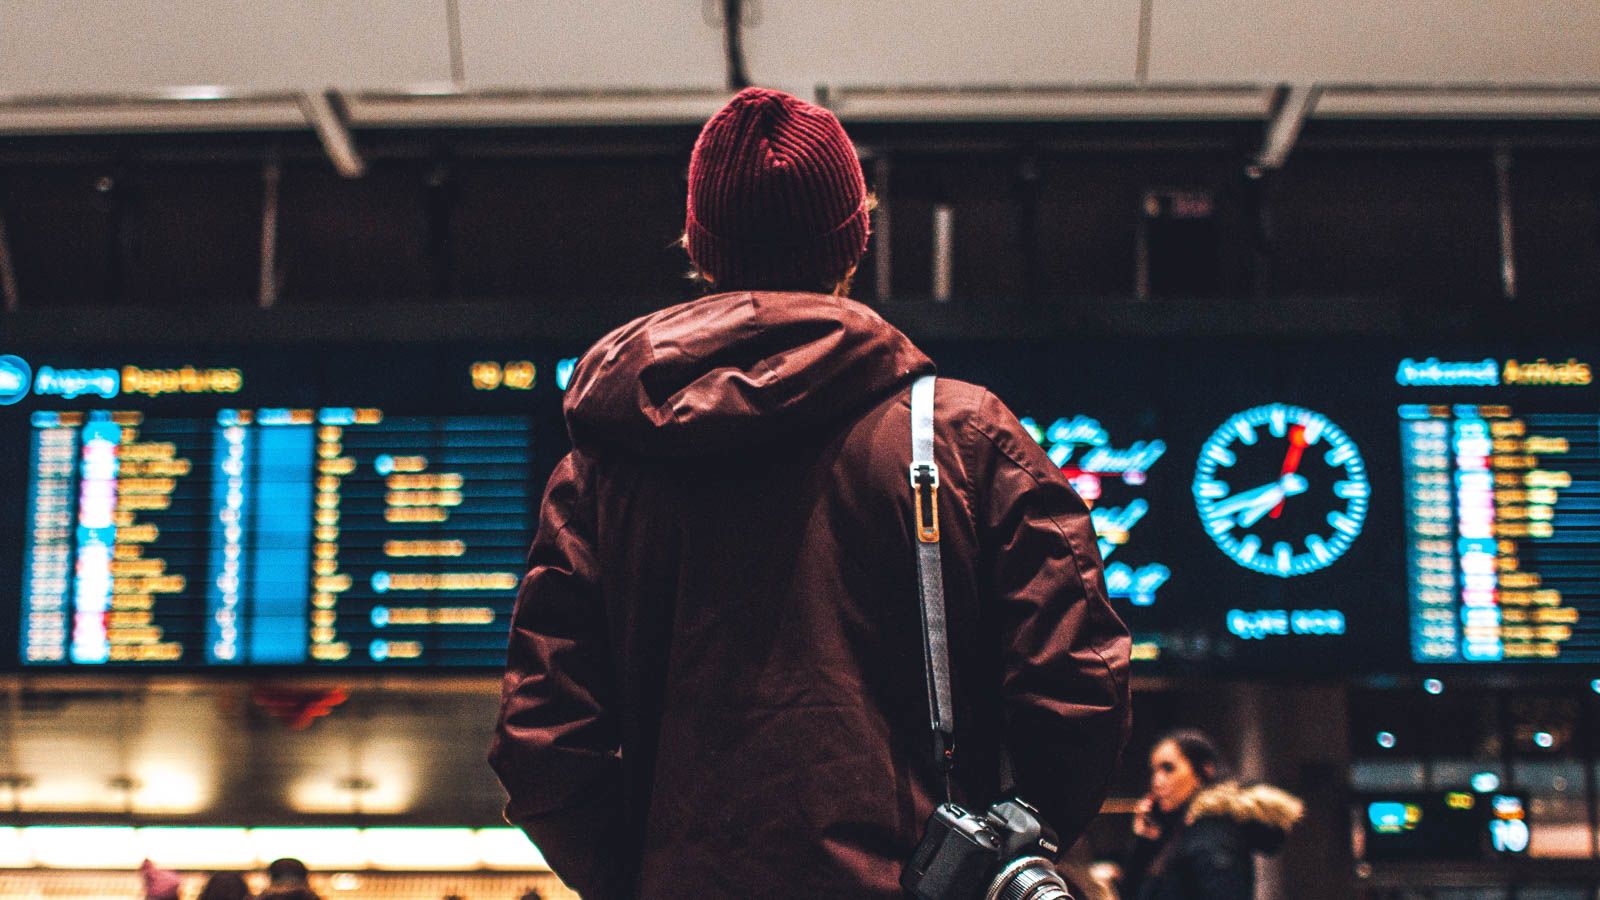 Cannabidiol (CBD) or other hemp products containing less than 0.3% THC can be transported on planes, according to Transportation Security Administration (TSA) guidelines. (Photo by Erik Odiin/Unsplash)